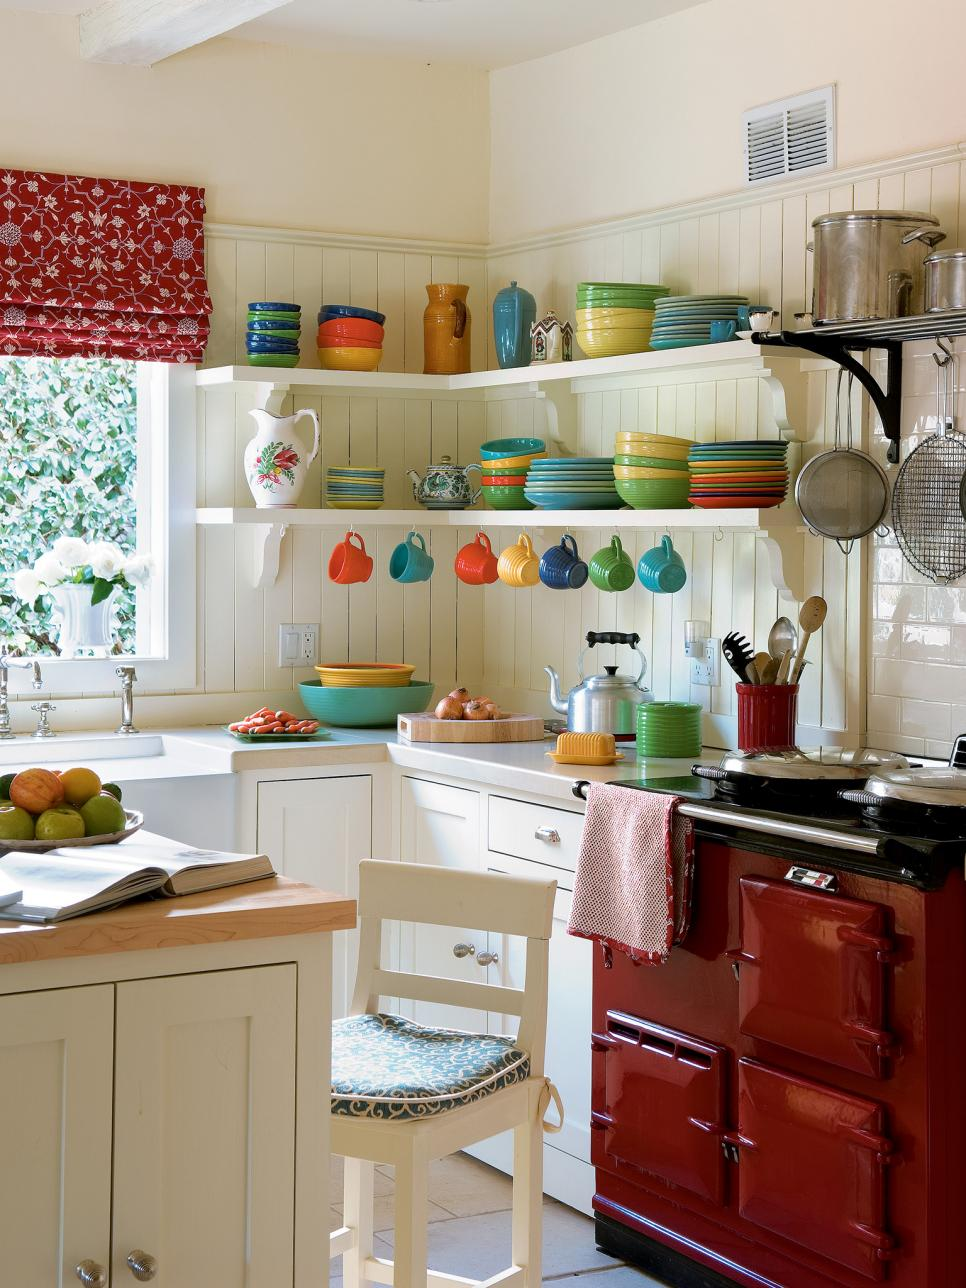 Chic Pictures of Small Kitchen Design Ideas From HGTV | HGTV designs for small kitchens